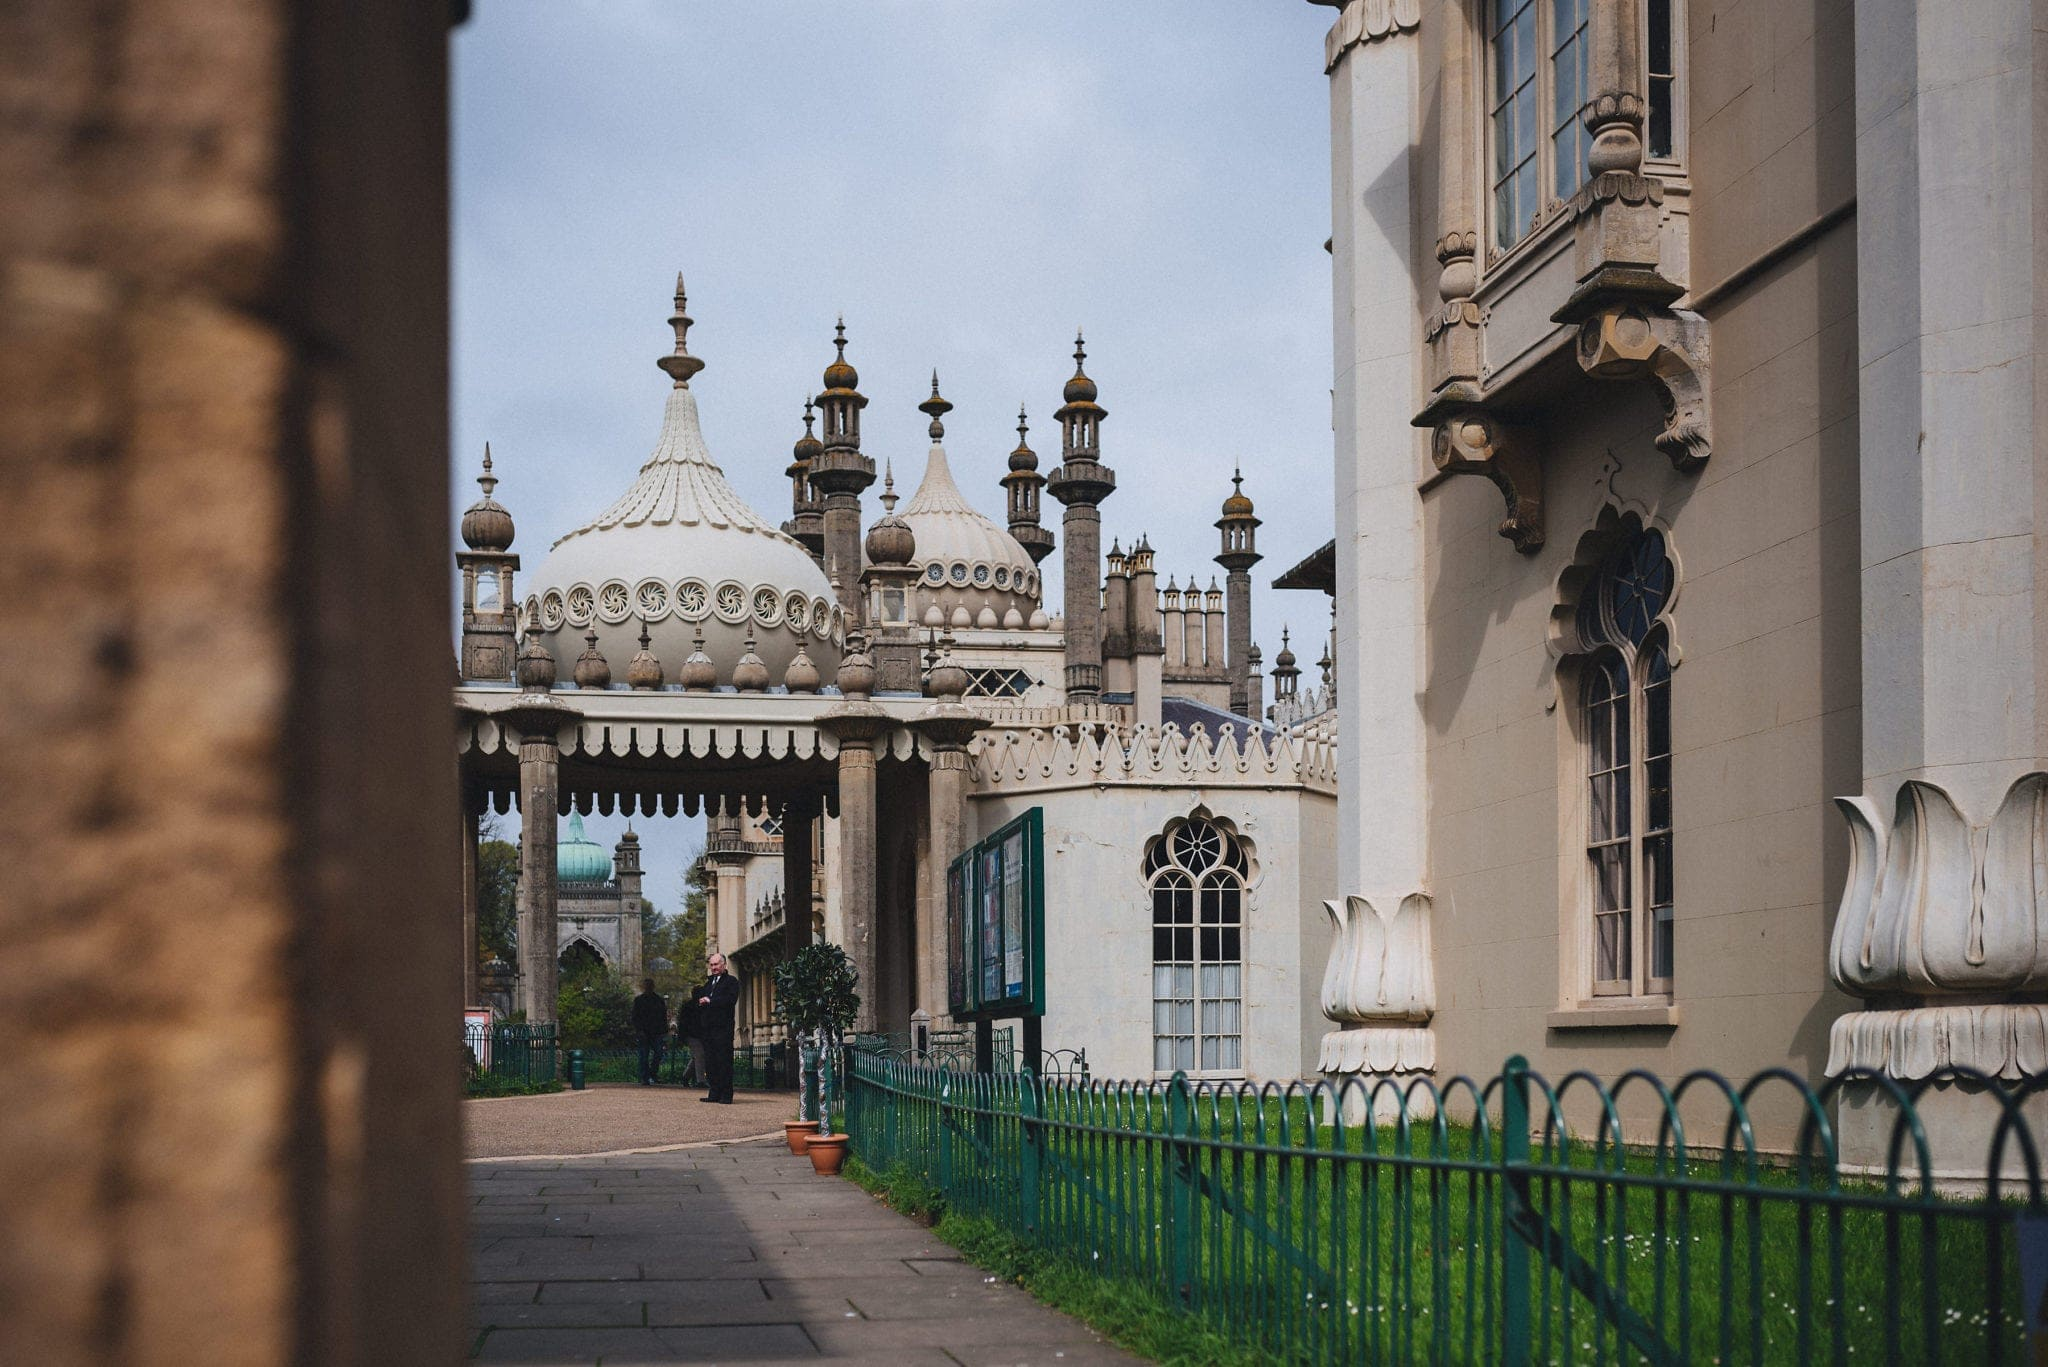 External shot of Brighton Royal Pavilion